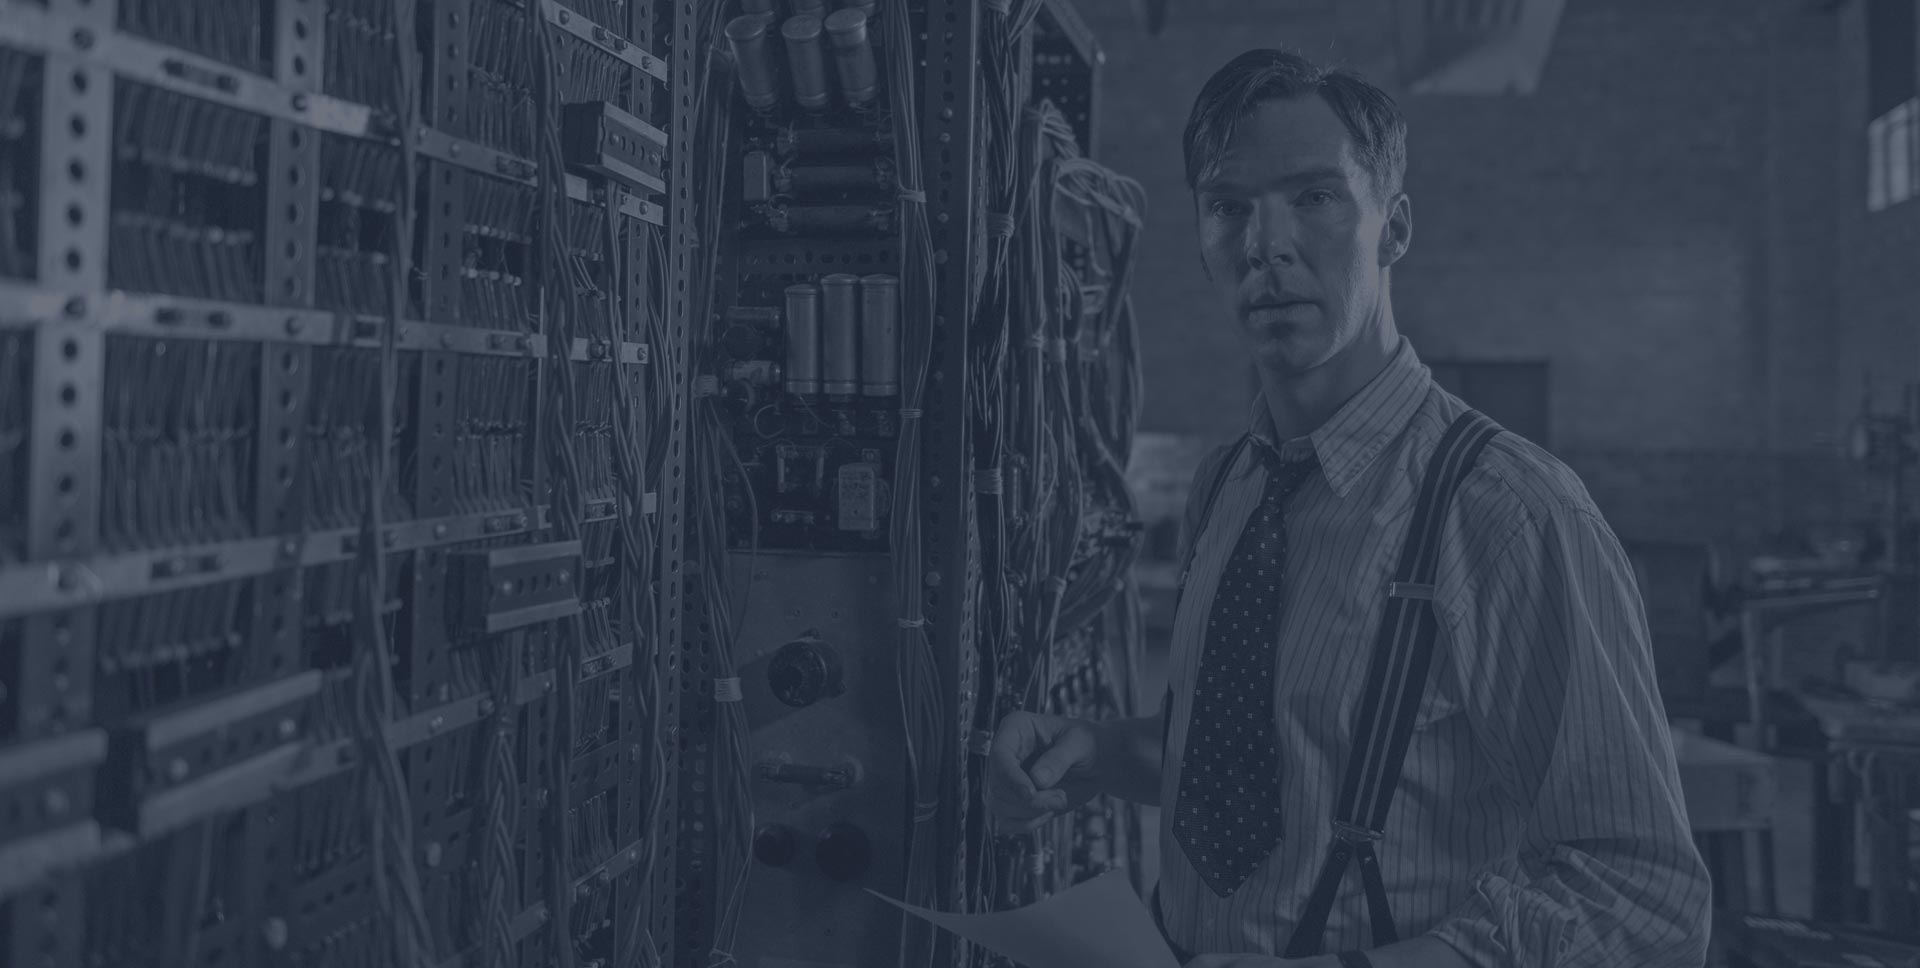 Actor Benedict Cumberbatch as Alan Turing in the 2014 movie 'The Imitation Game'